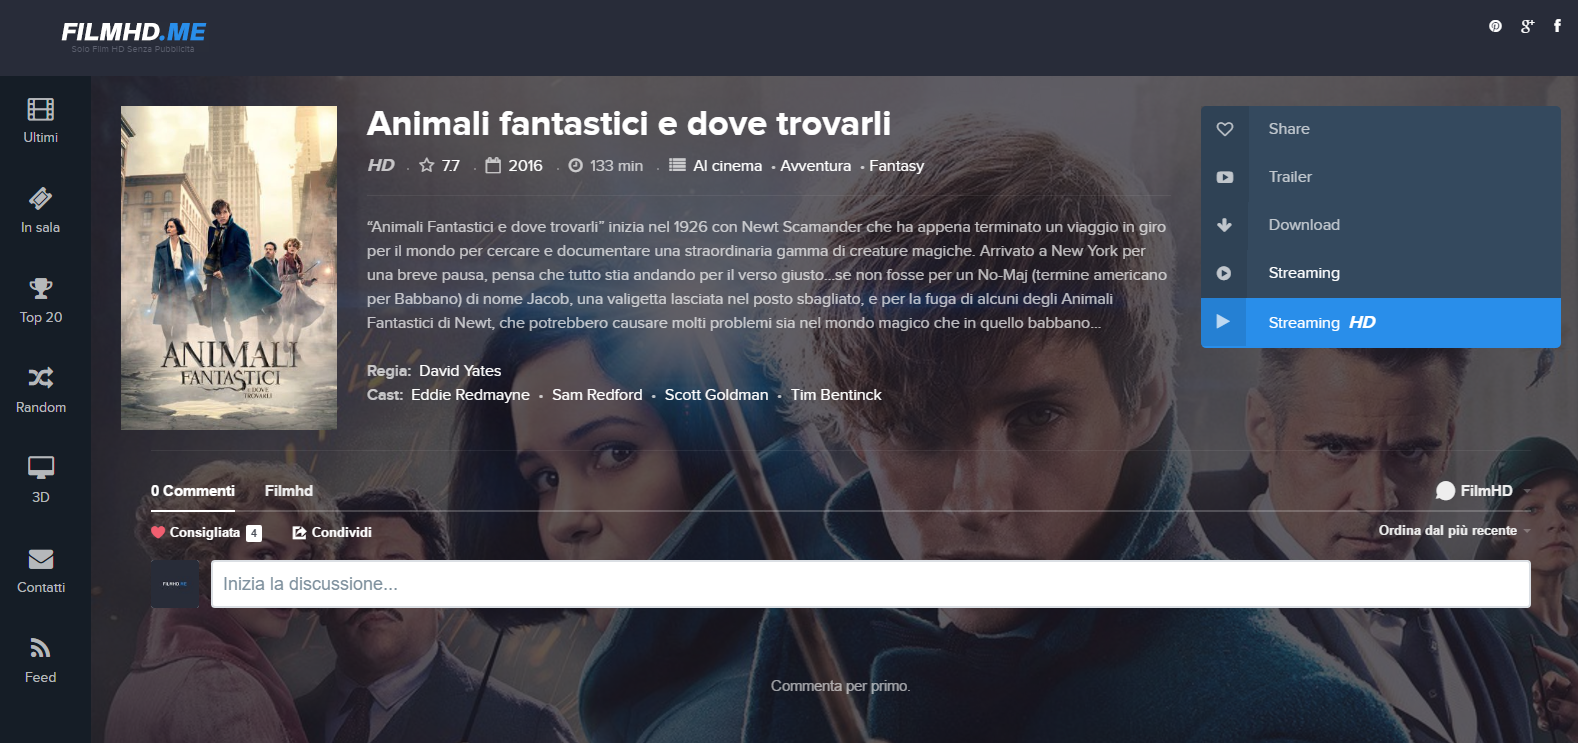 How to watch film streaming in hd altadefinizione for free - Tavolo 19 streaming altadefinizione ...